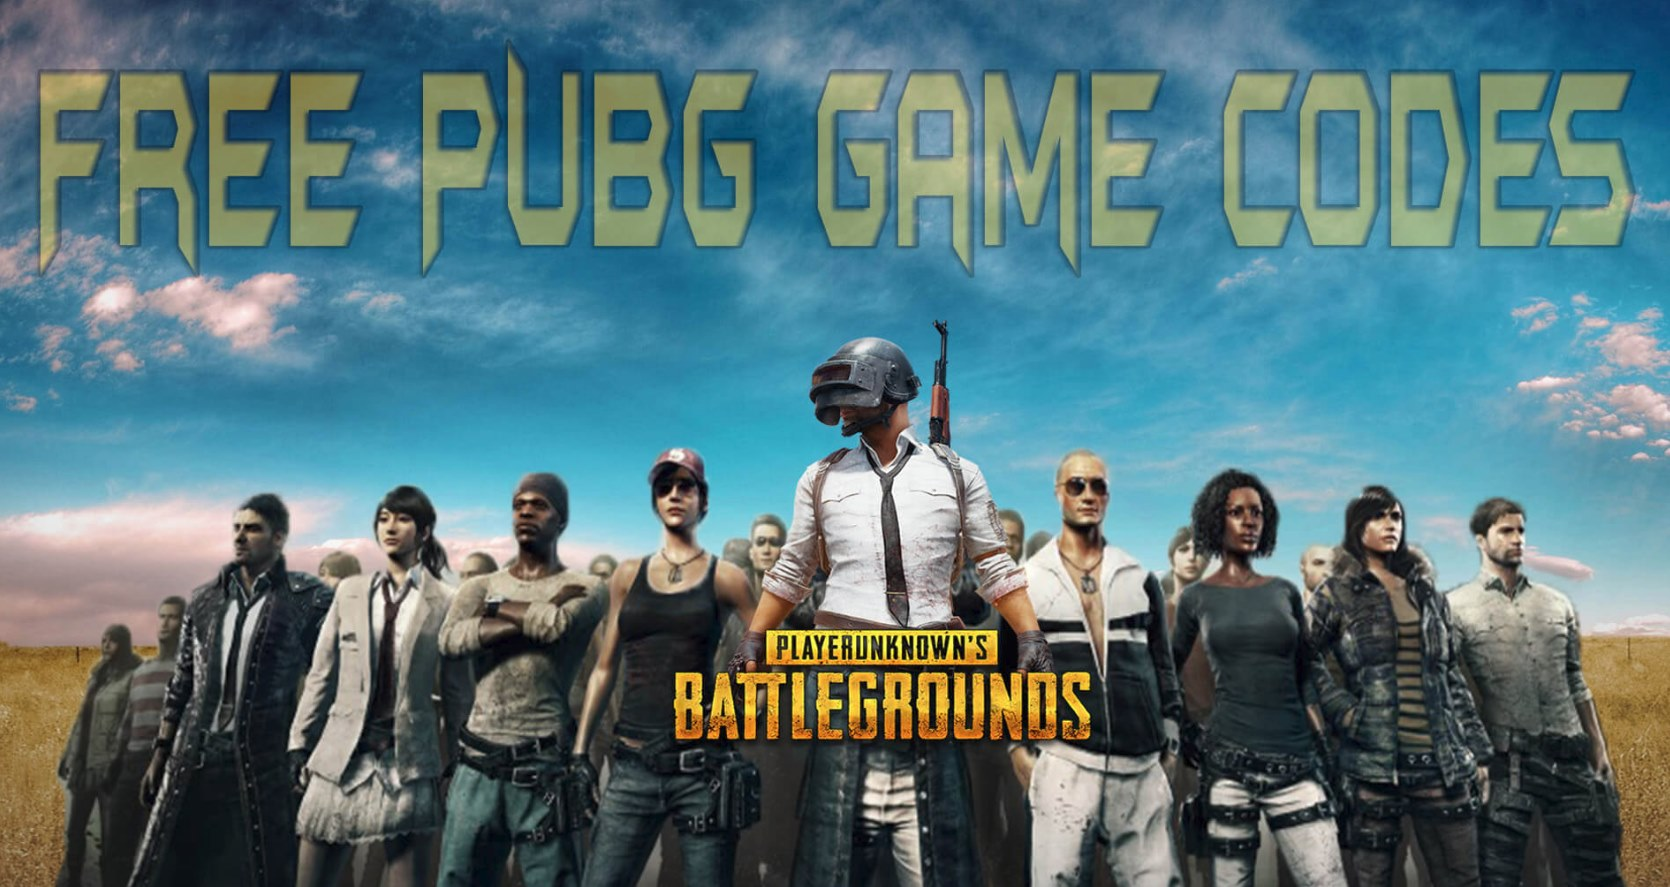 How To Get PUBG Game Code